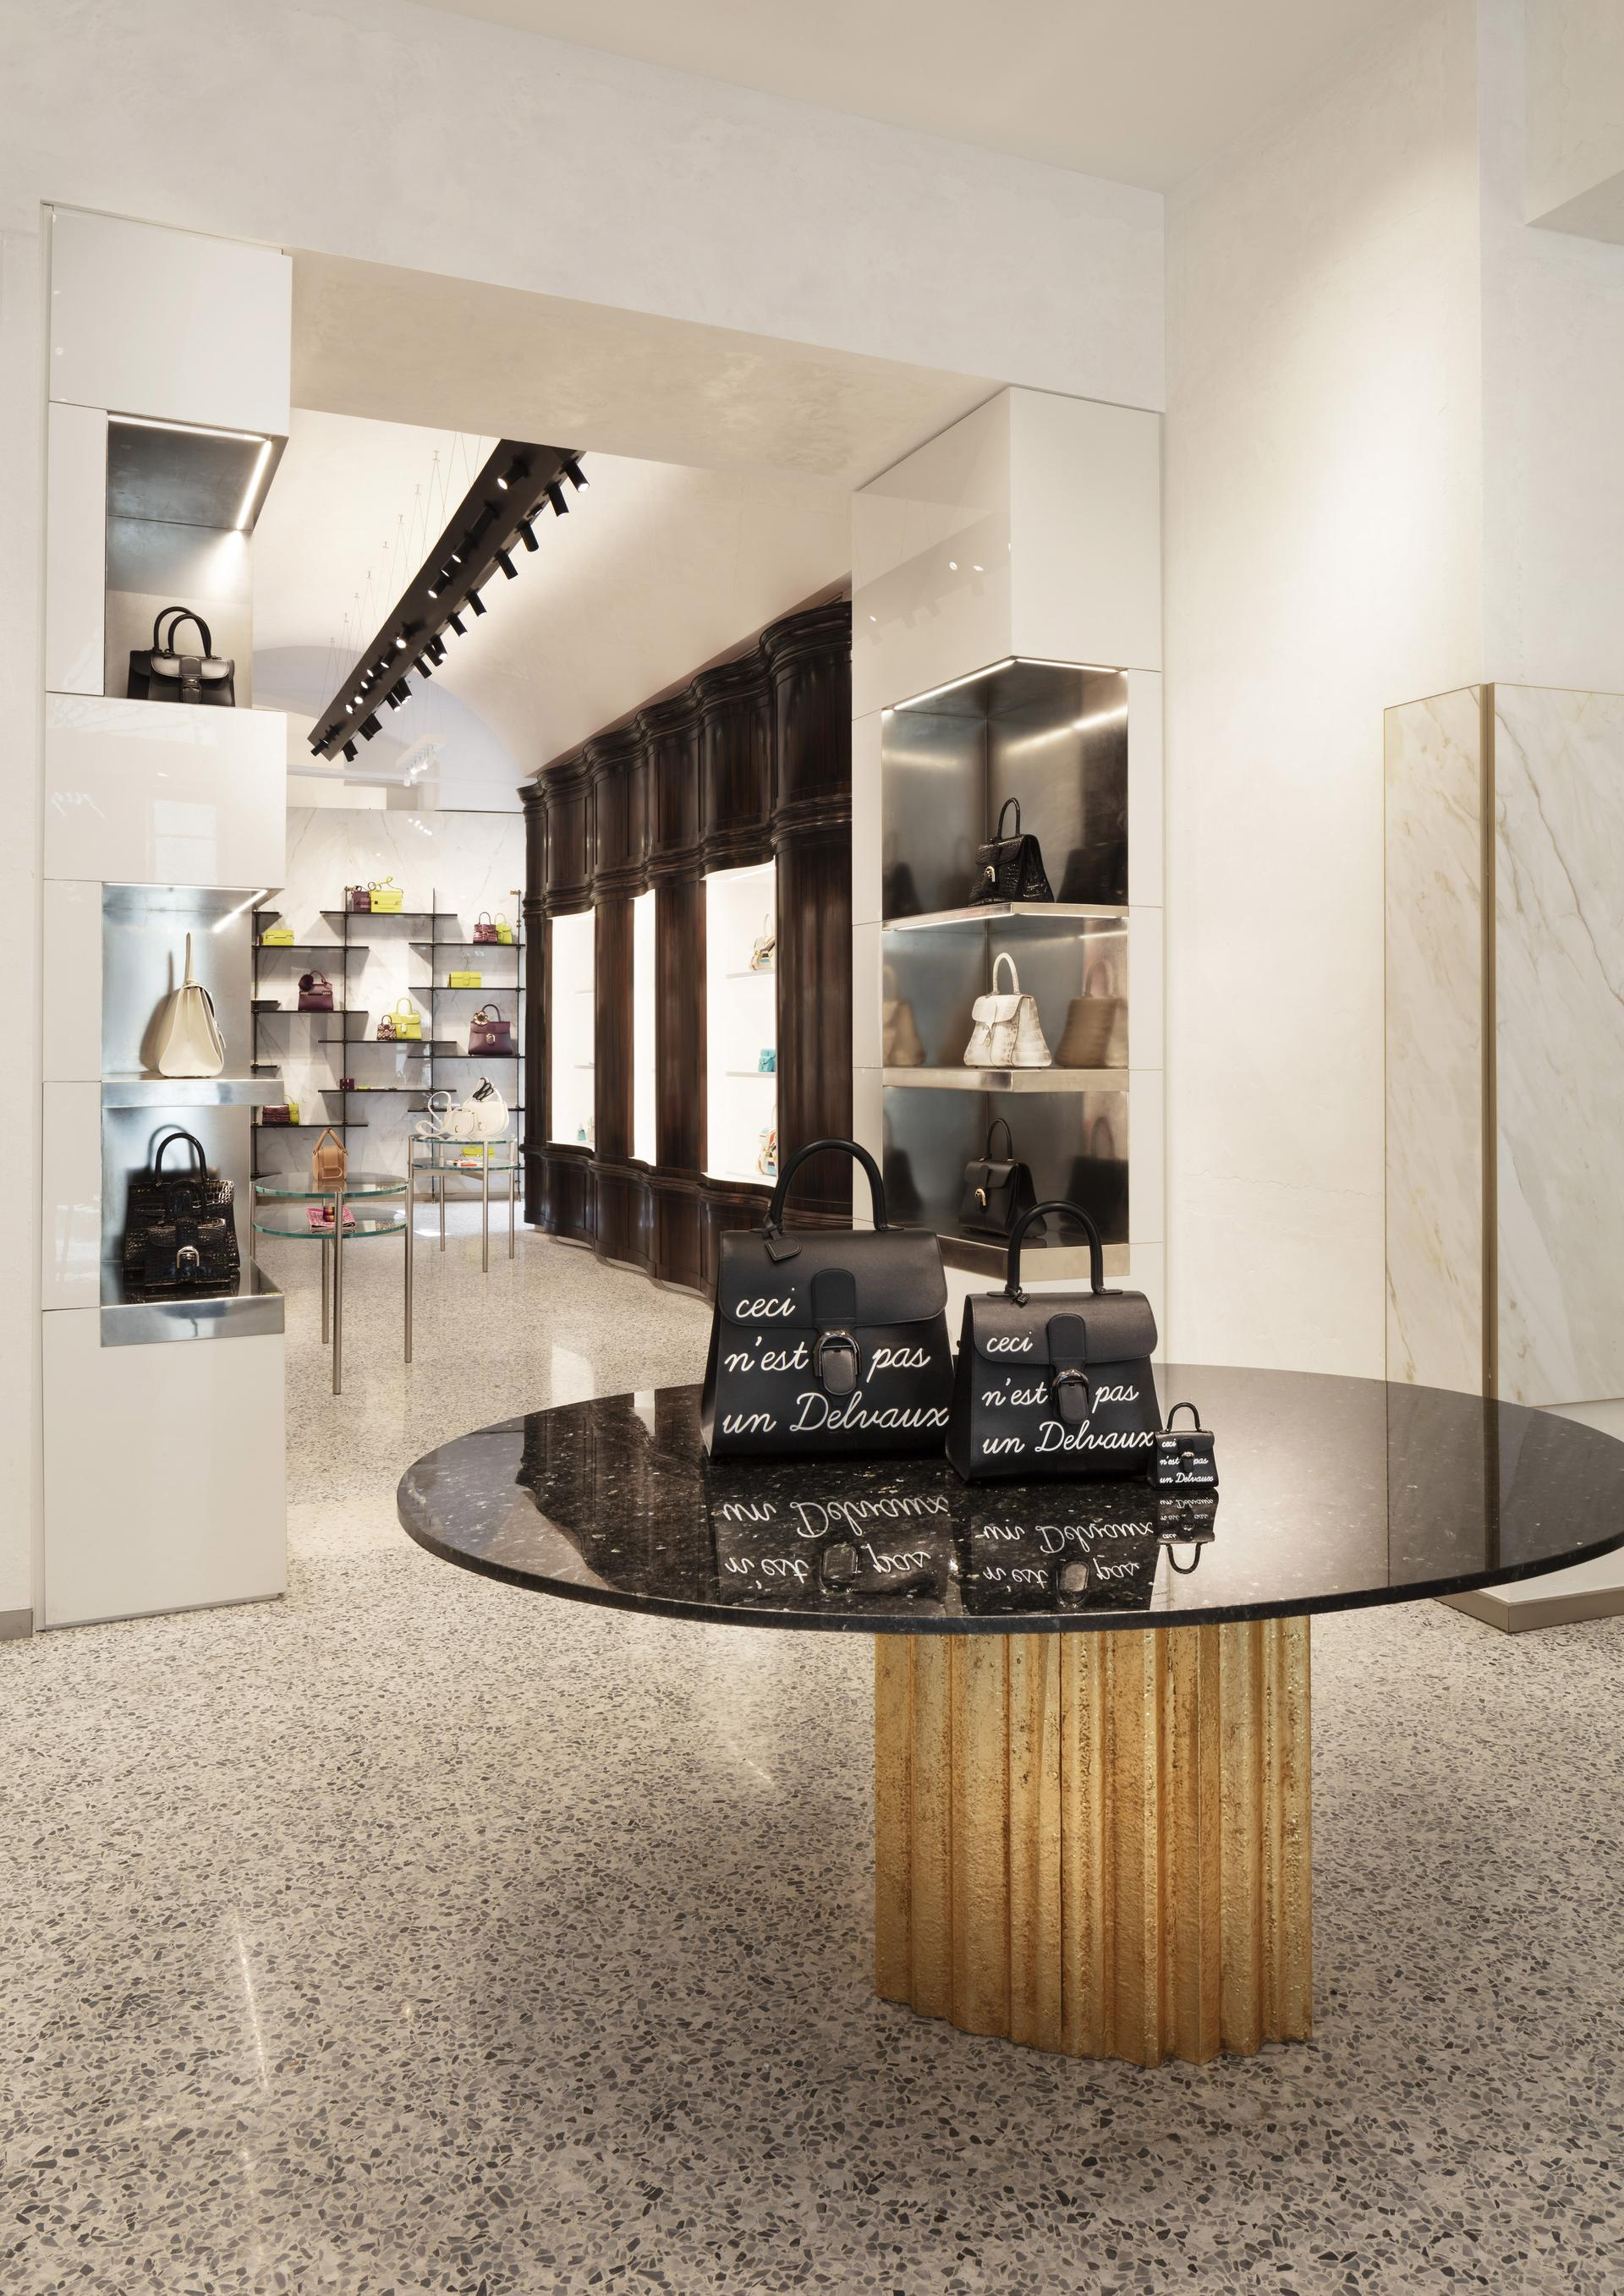 Delvaux Milano photo Santi Caleca